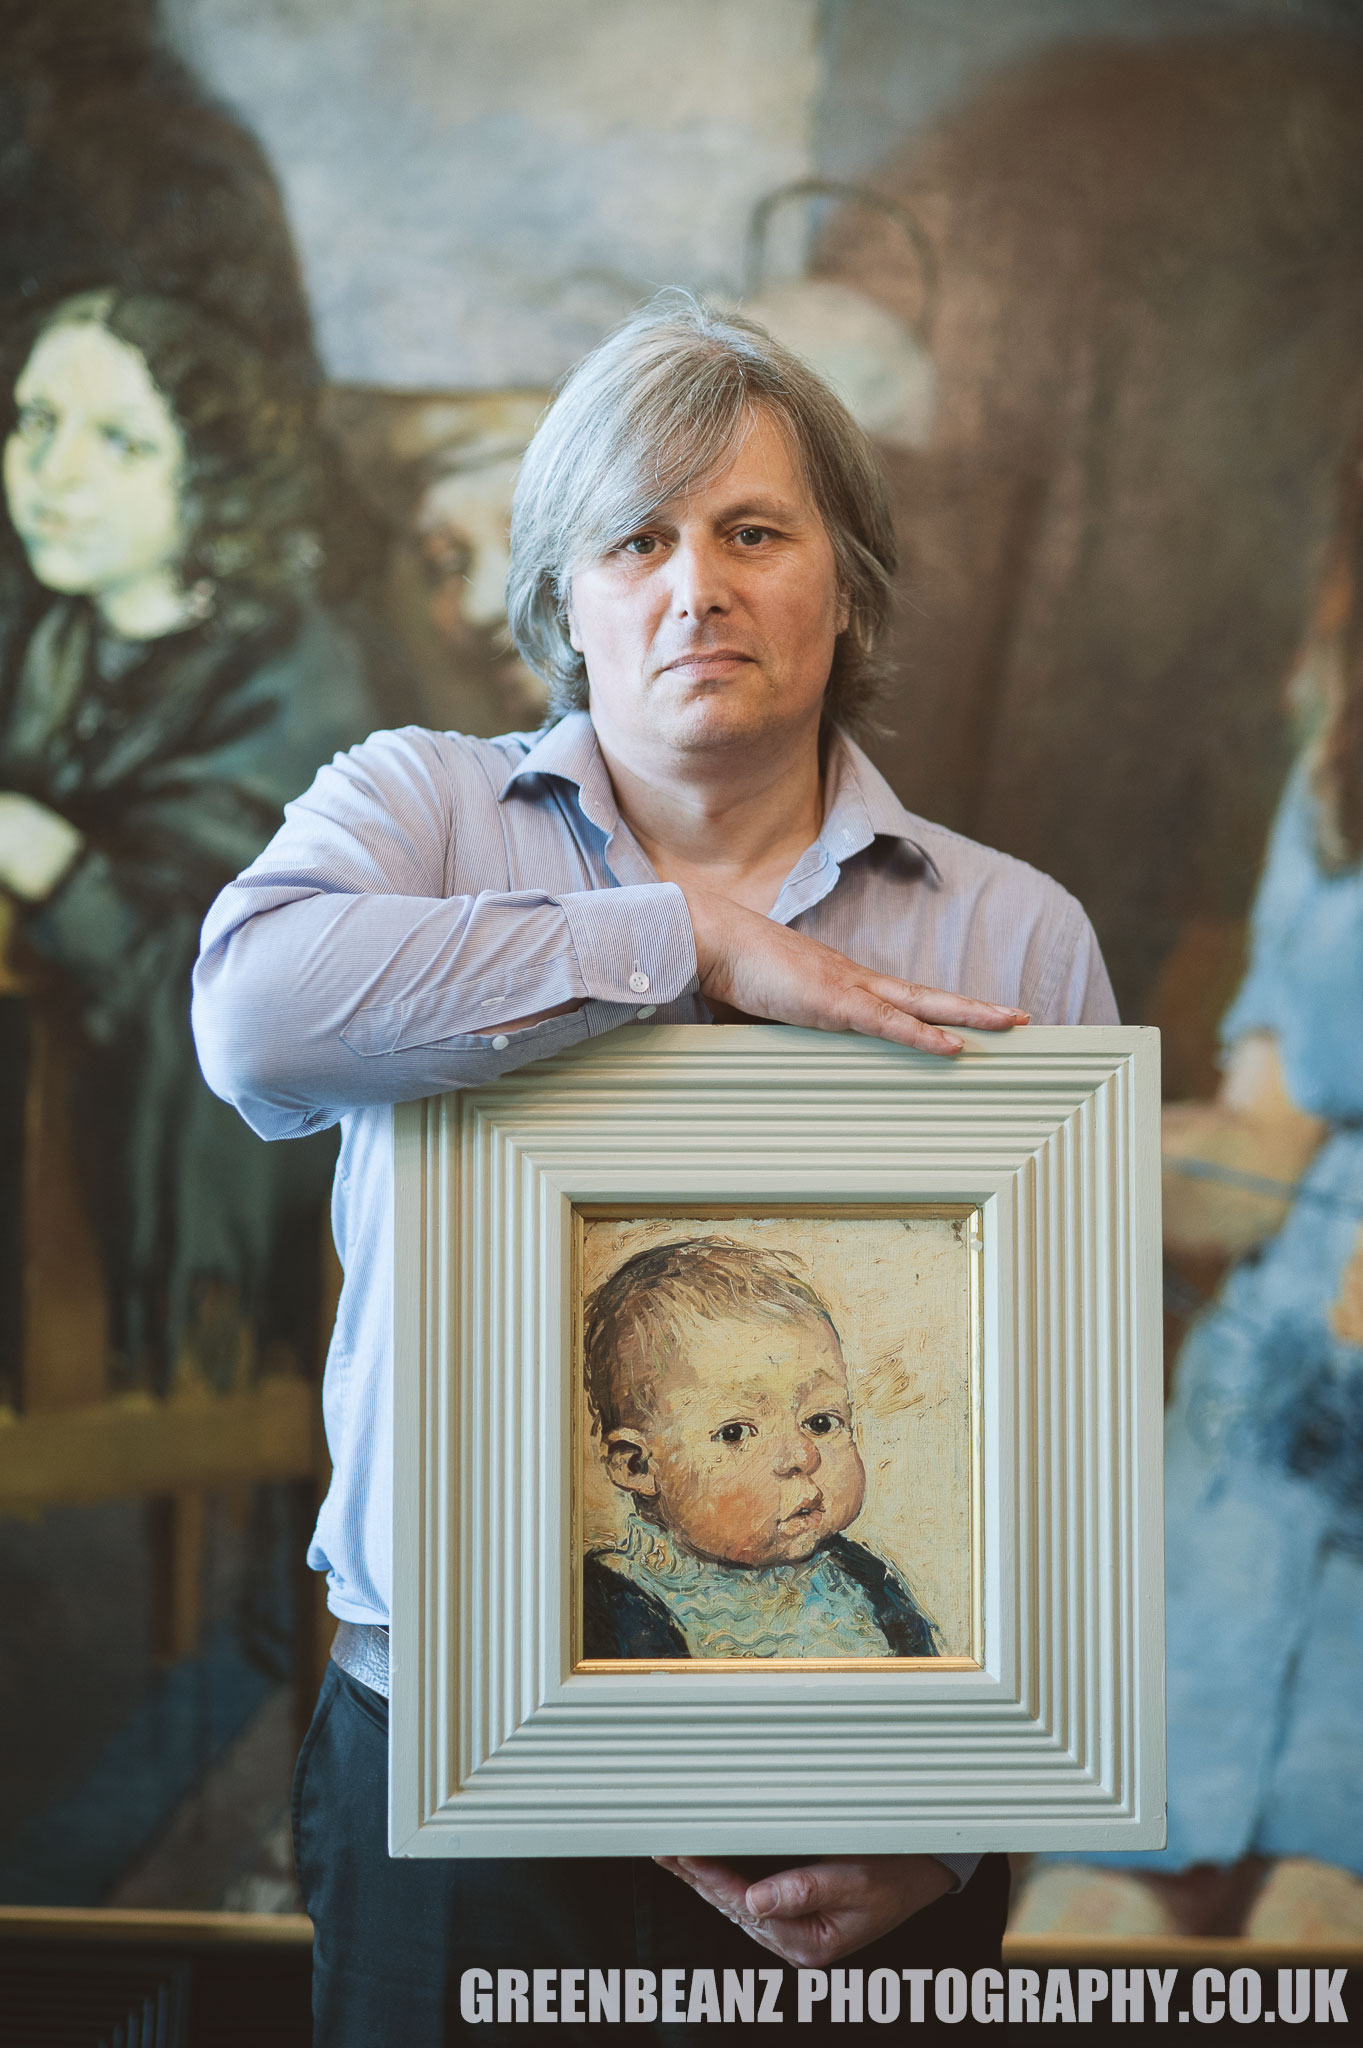 Reuben Lenkiewicz holds a portrait of himself as a baby painted by father Robert